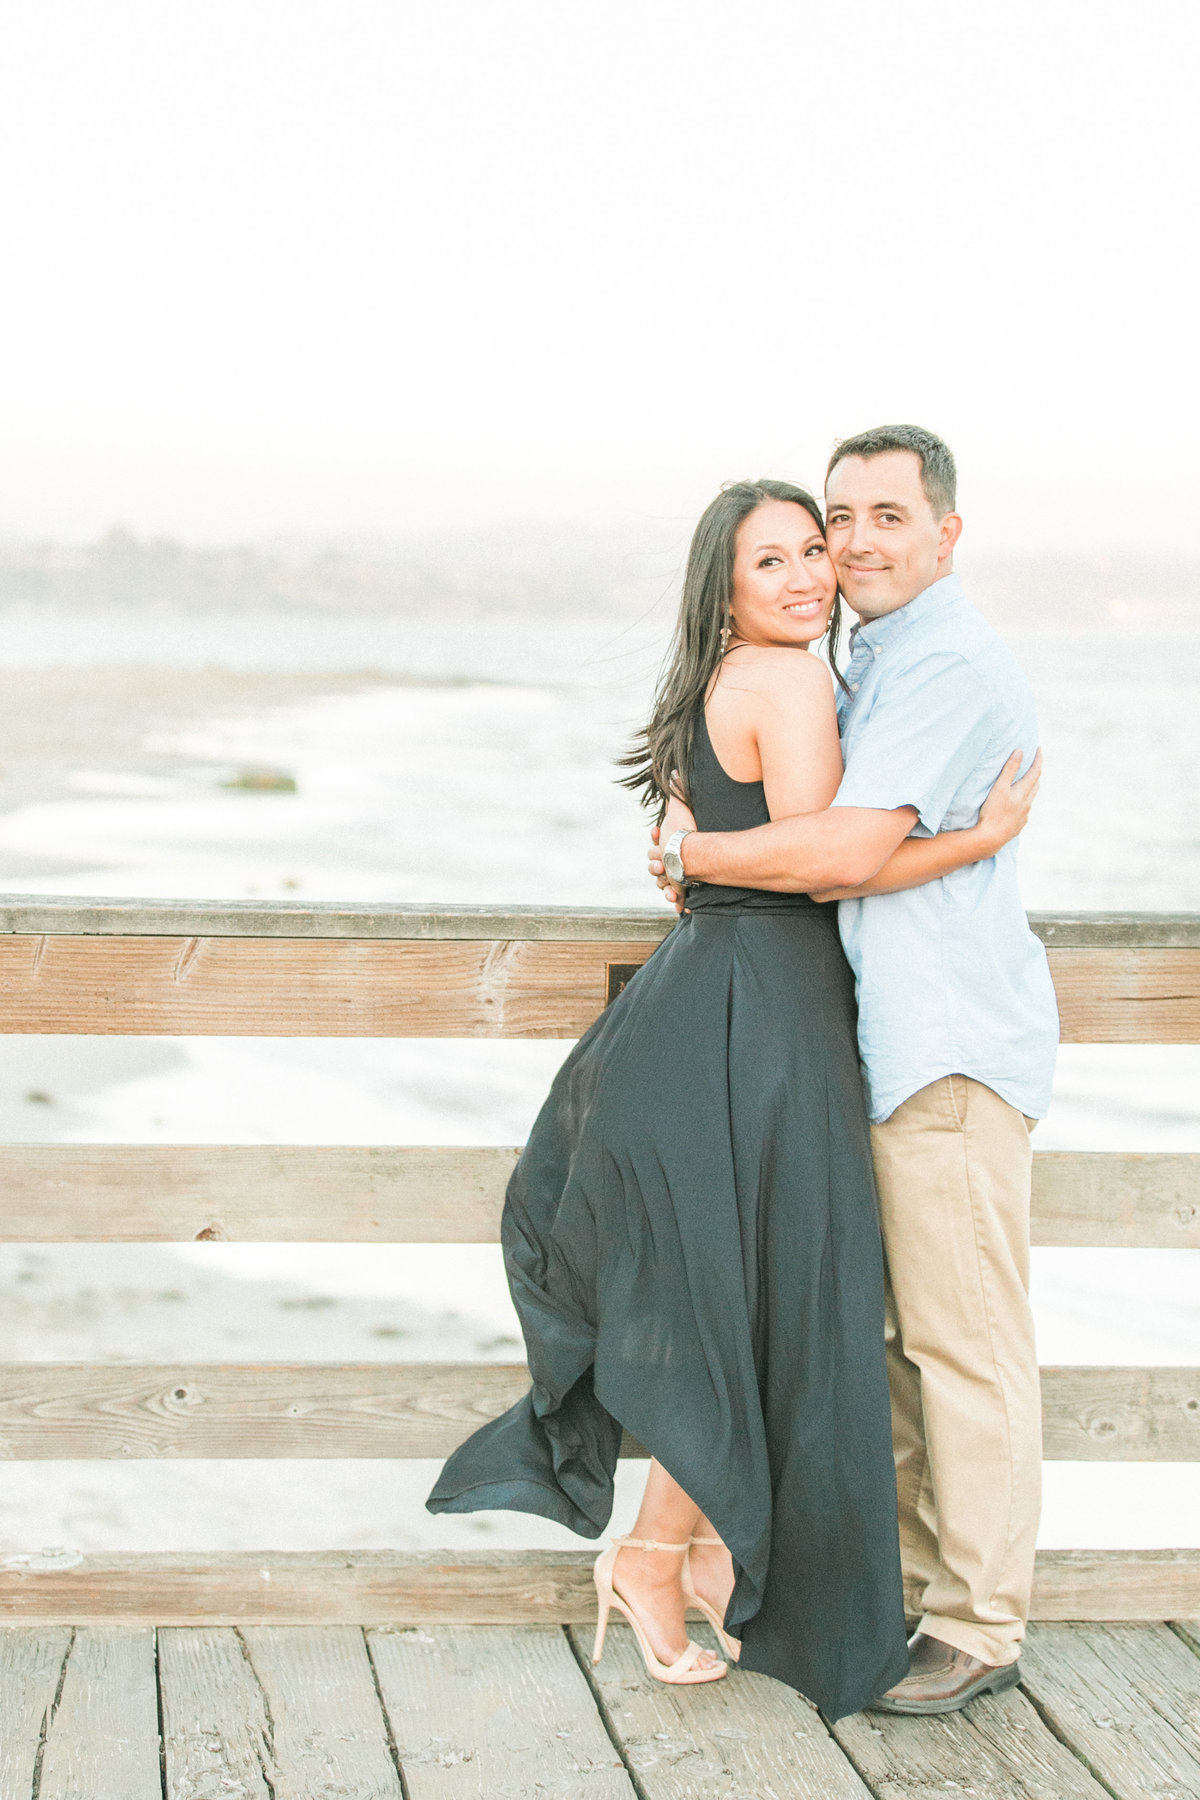 Dusk Natural Light Beach Pier Engagement